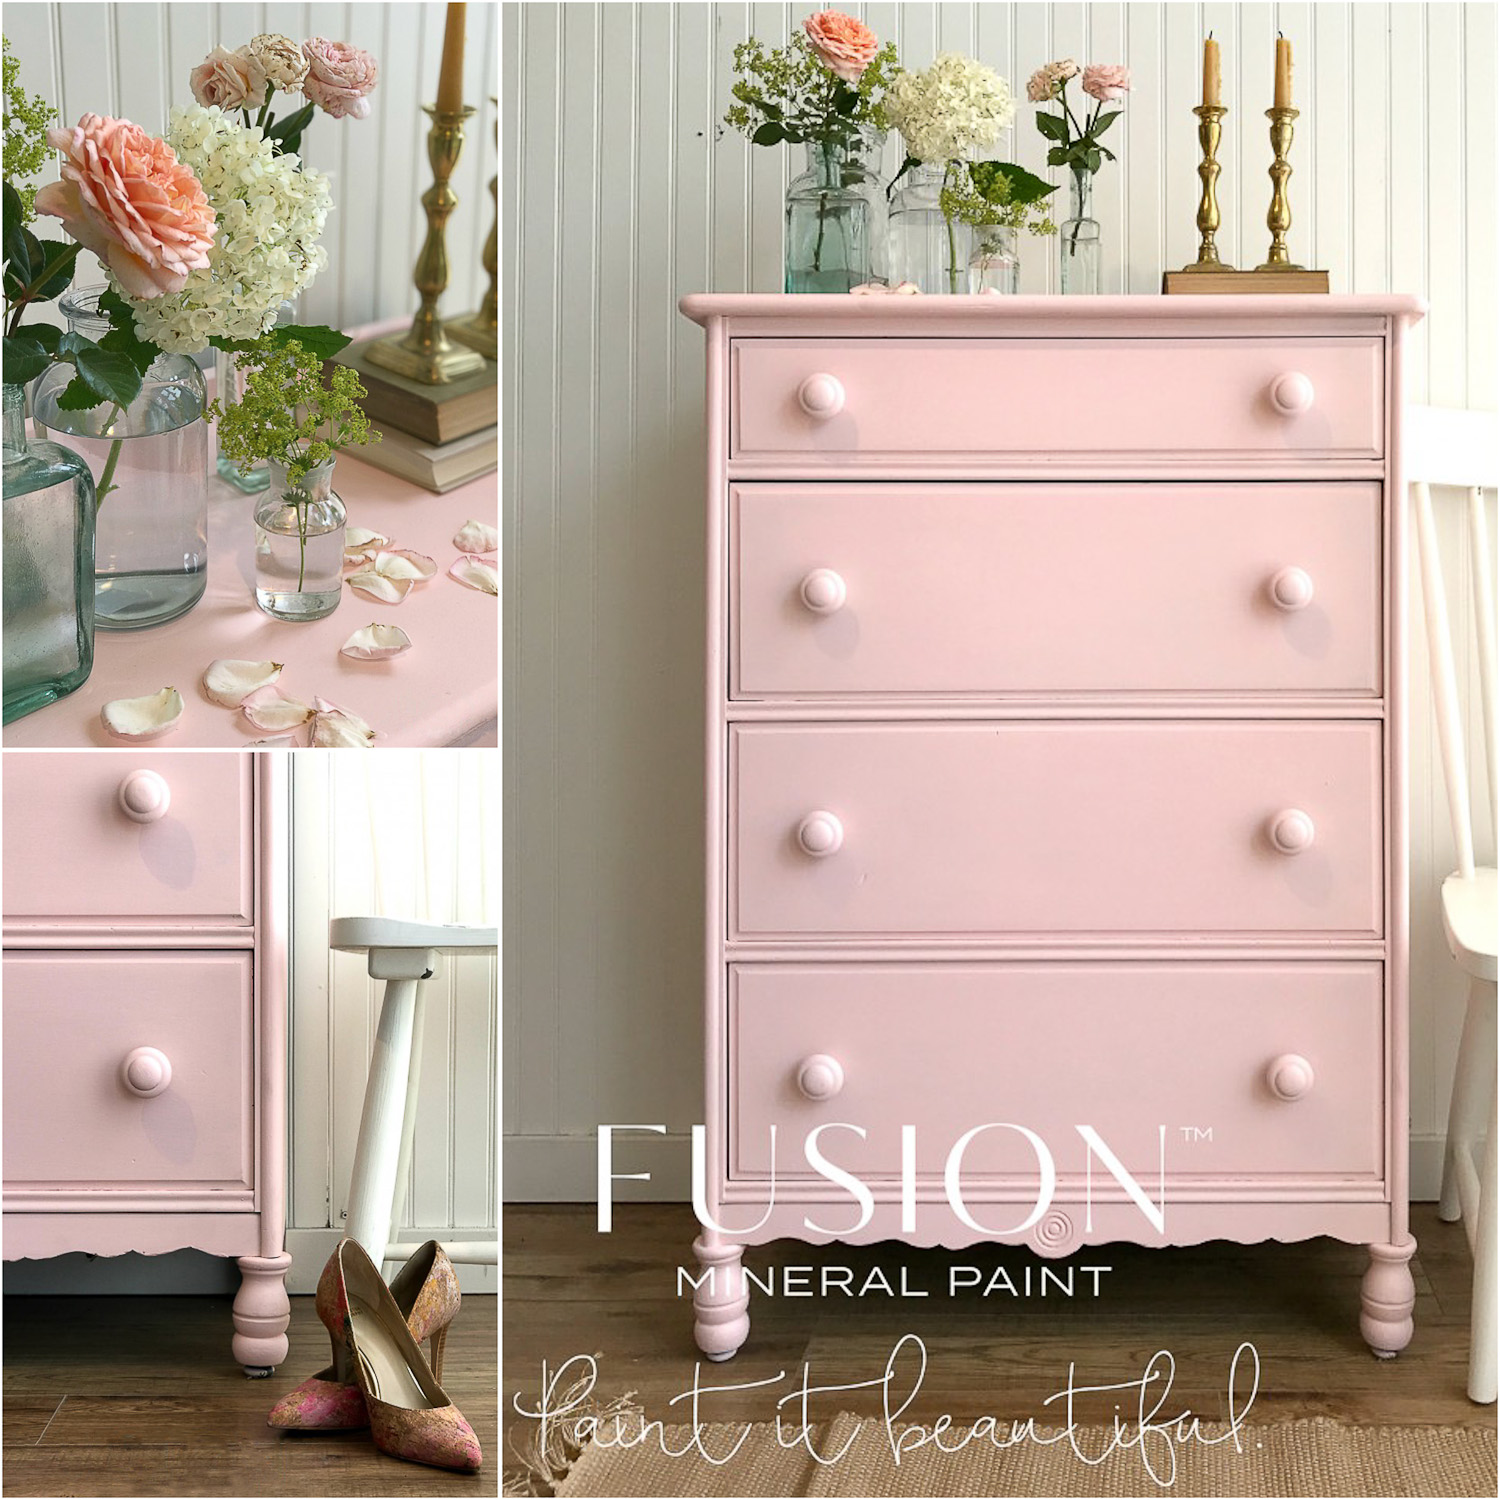 Buy Fusion Mineral Paint in the colour English Rose online at My Painted Door.